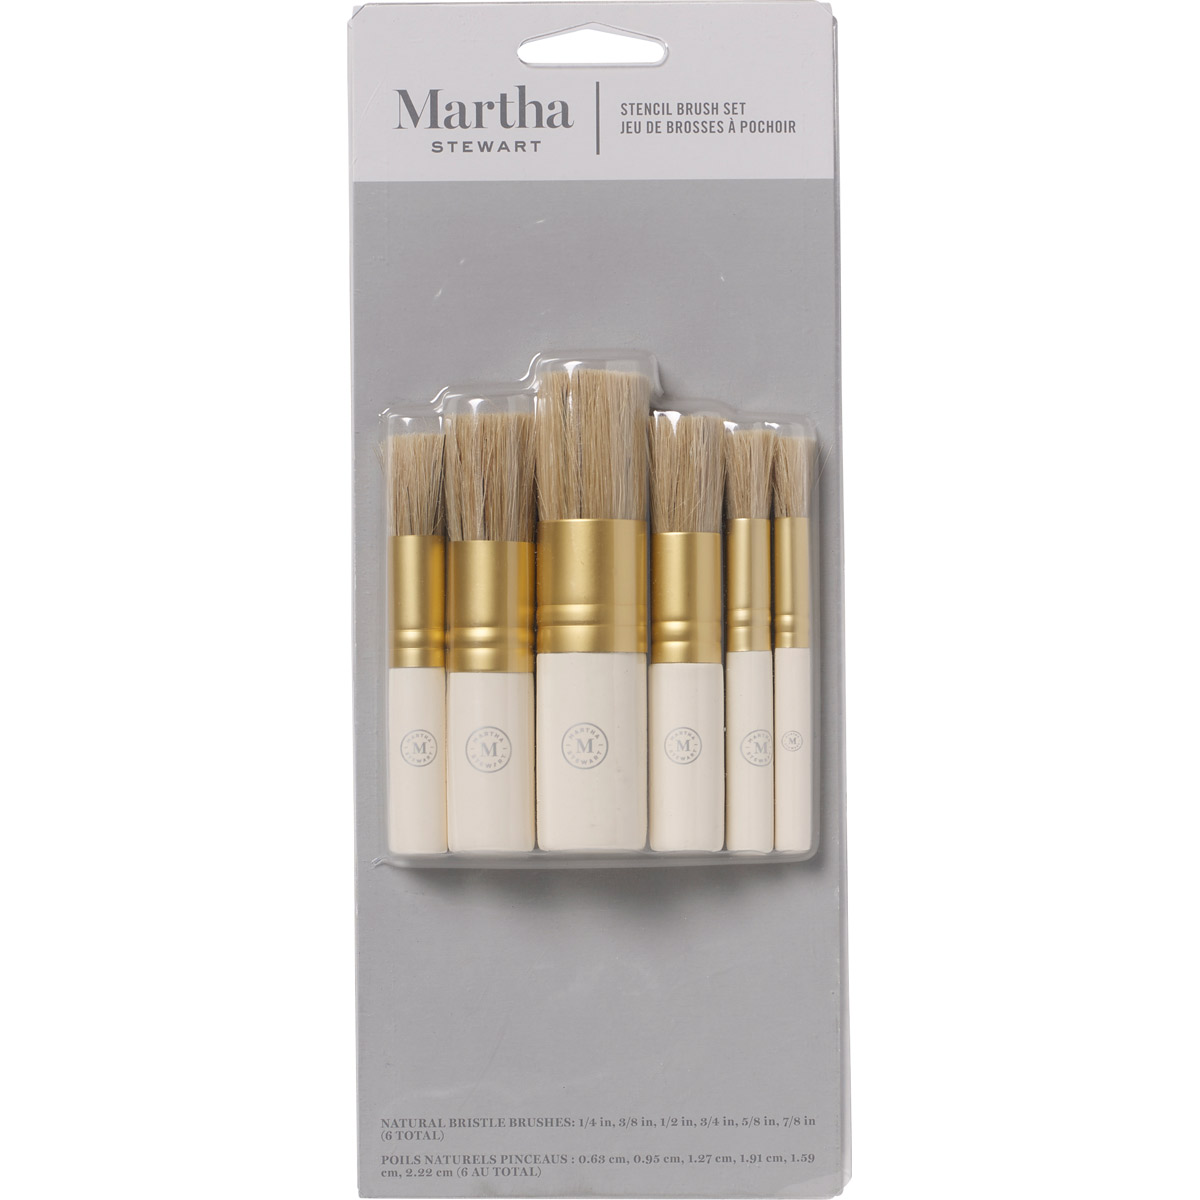 Martha Stewart ® Brush Sets - Stencil Brush Set - 6 pc. - 32248